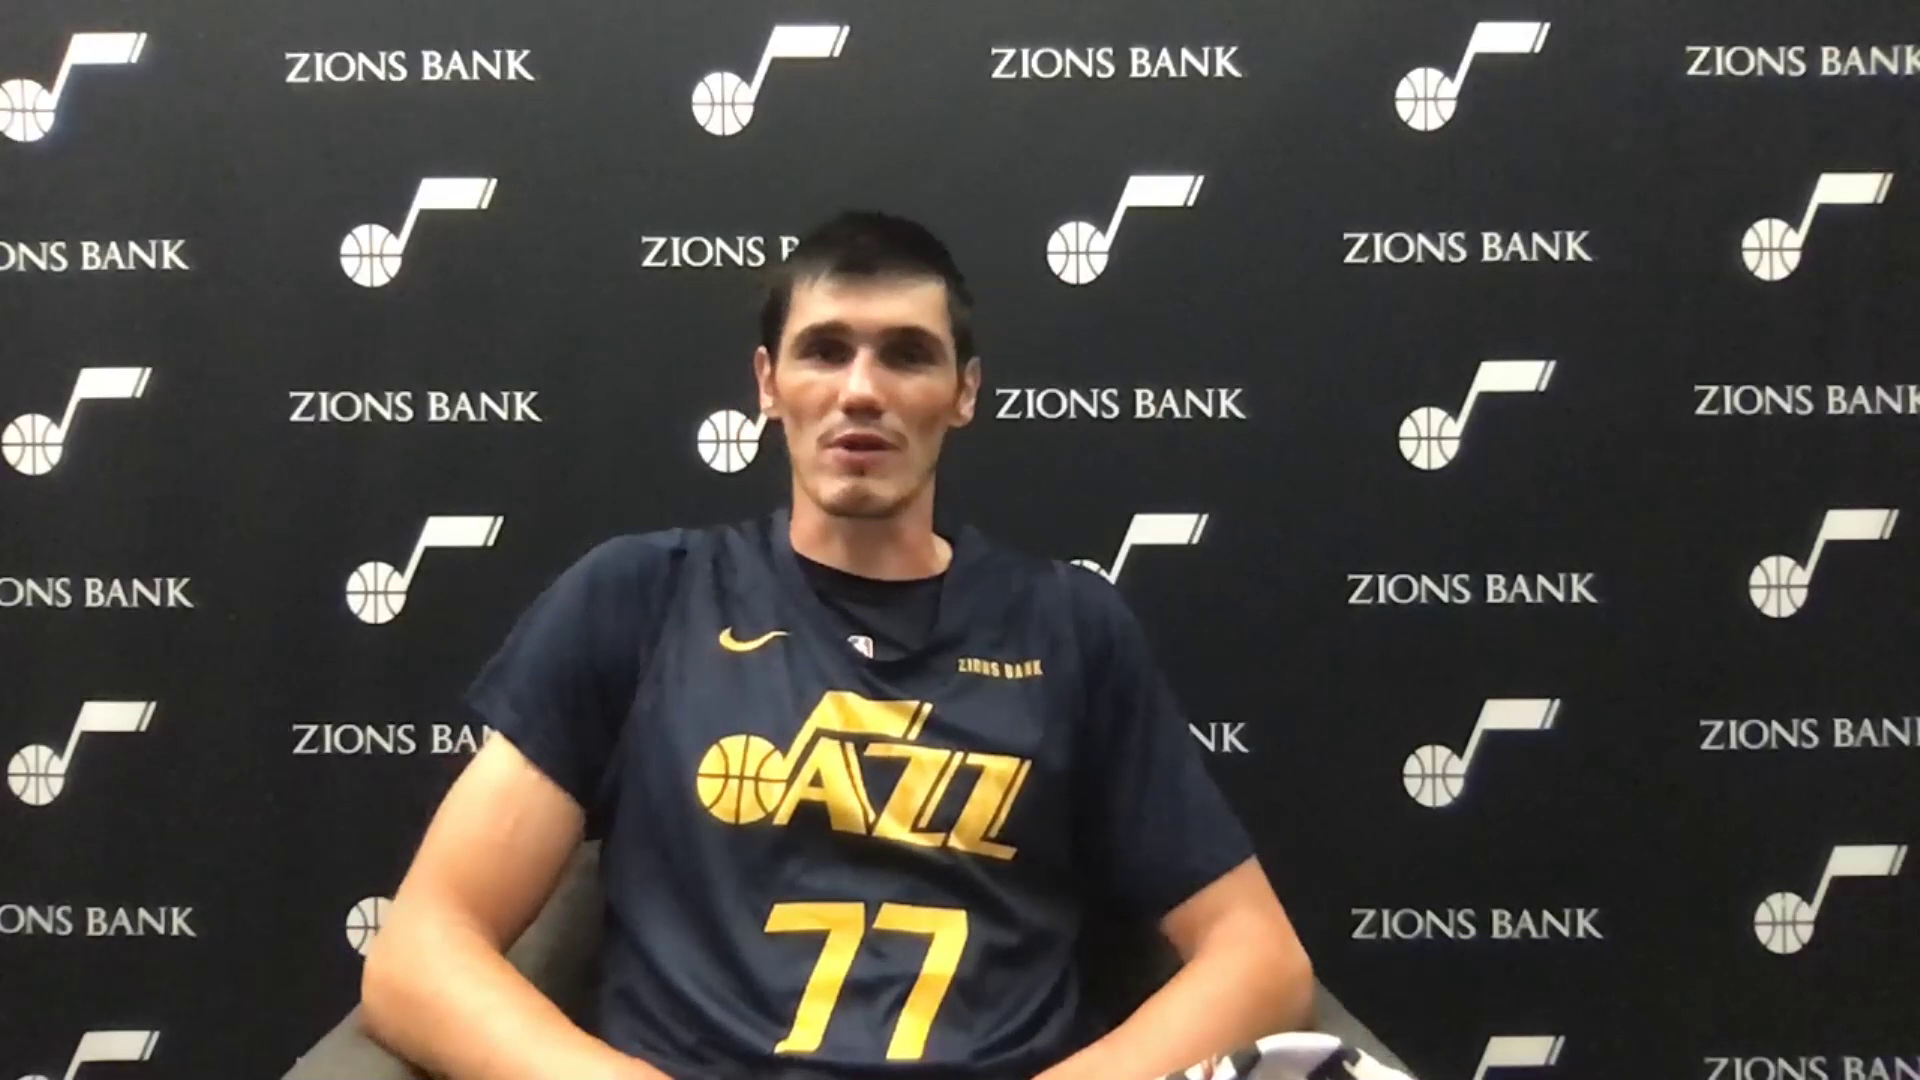 Practice 3.11- Ersan Ilyasova credits his offseason to being prepared for the opportunity